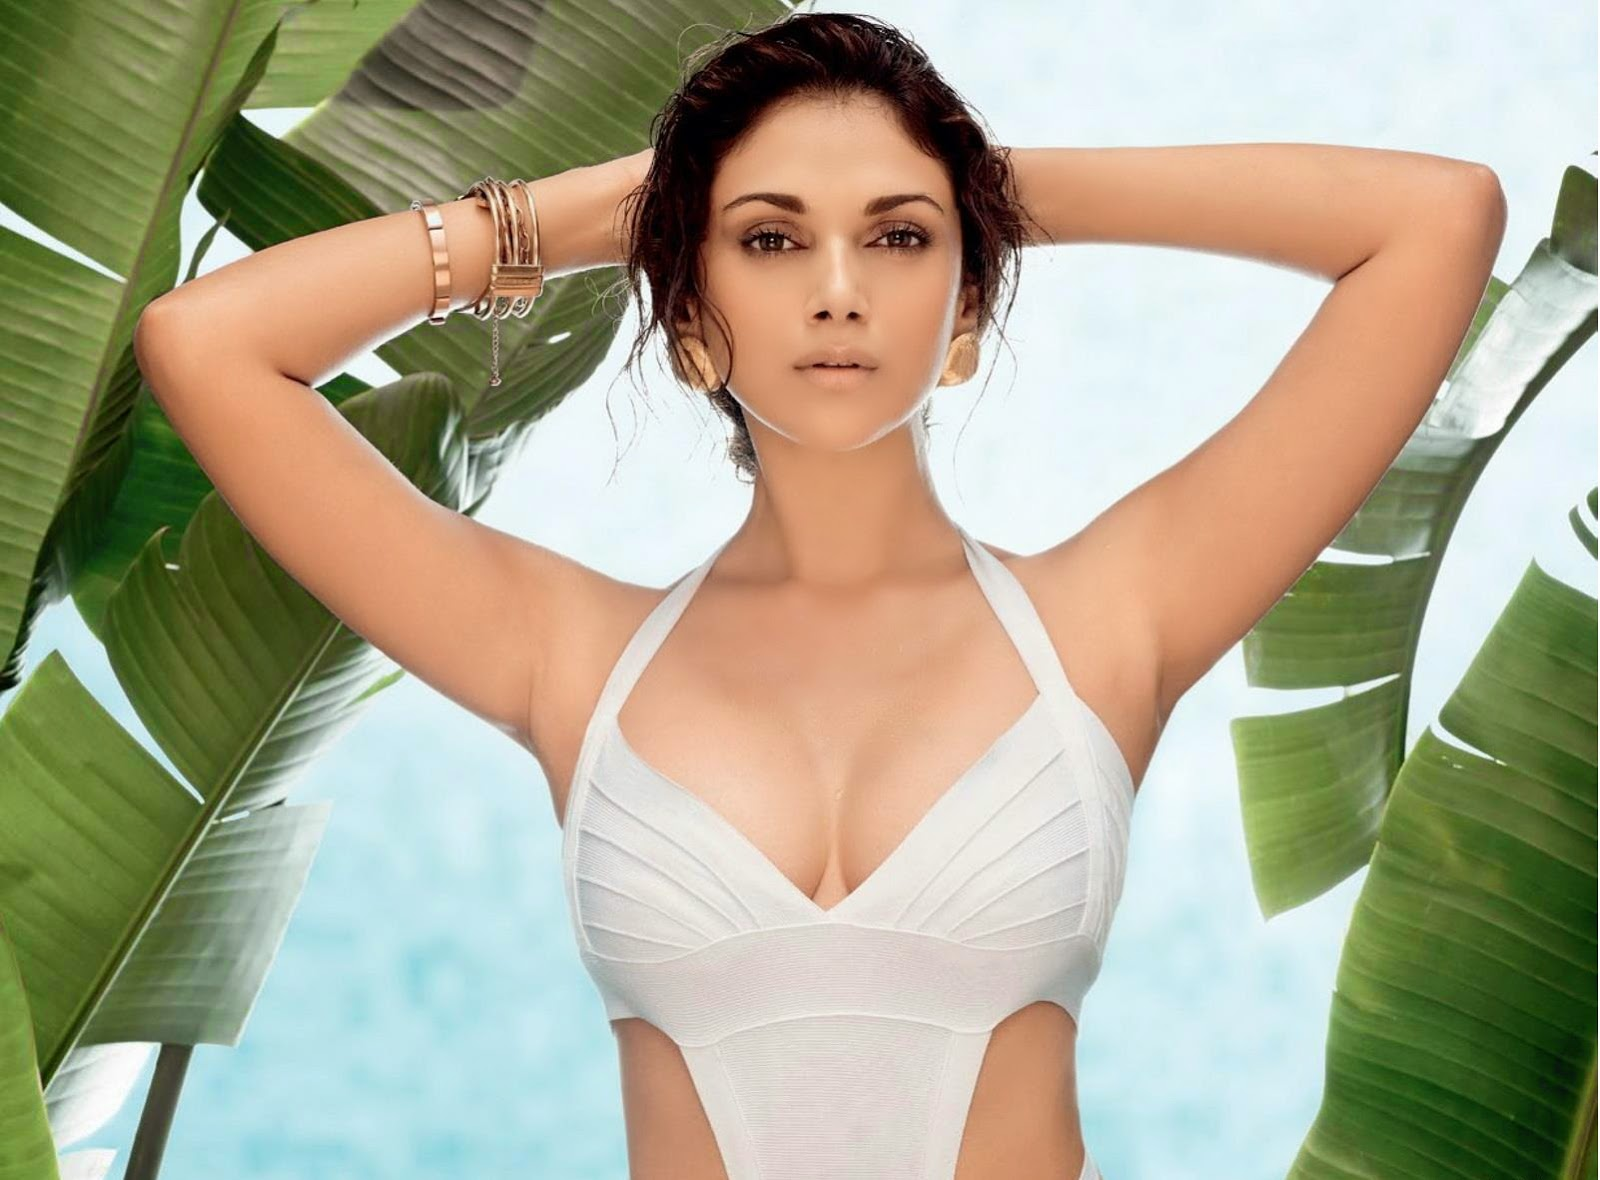 actress aditi rao hydari wallpapers - Aditi Rao Hydari Wallpapers filmibeat